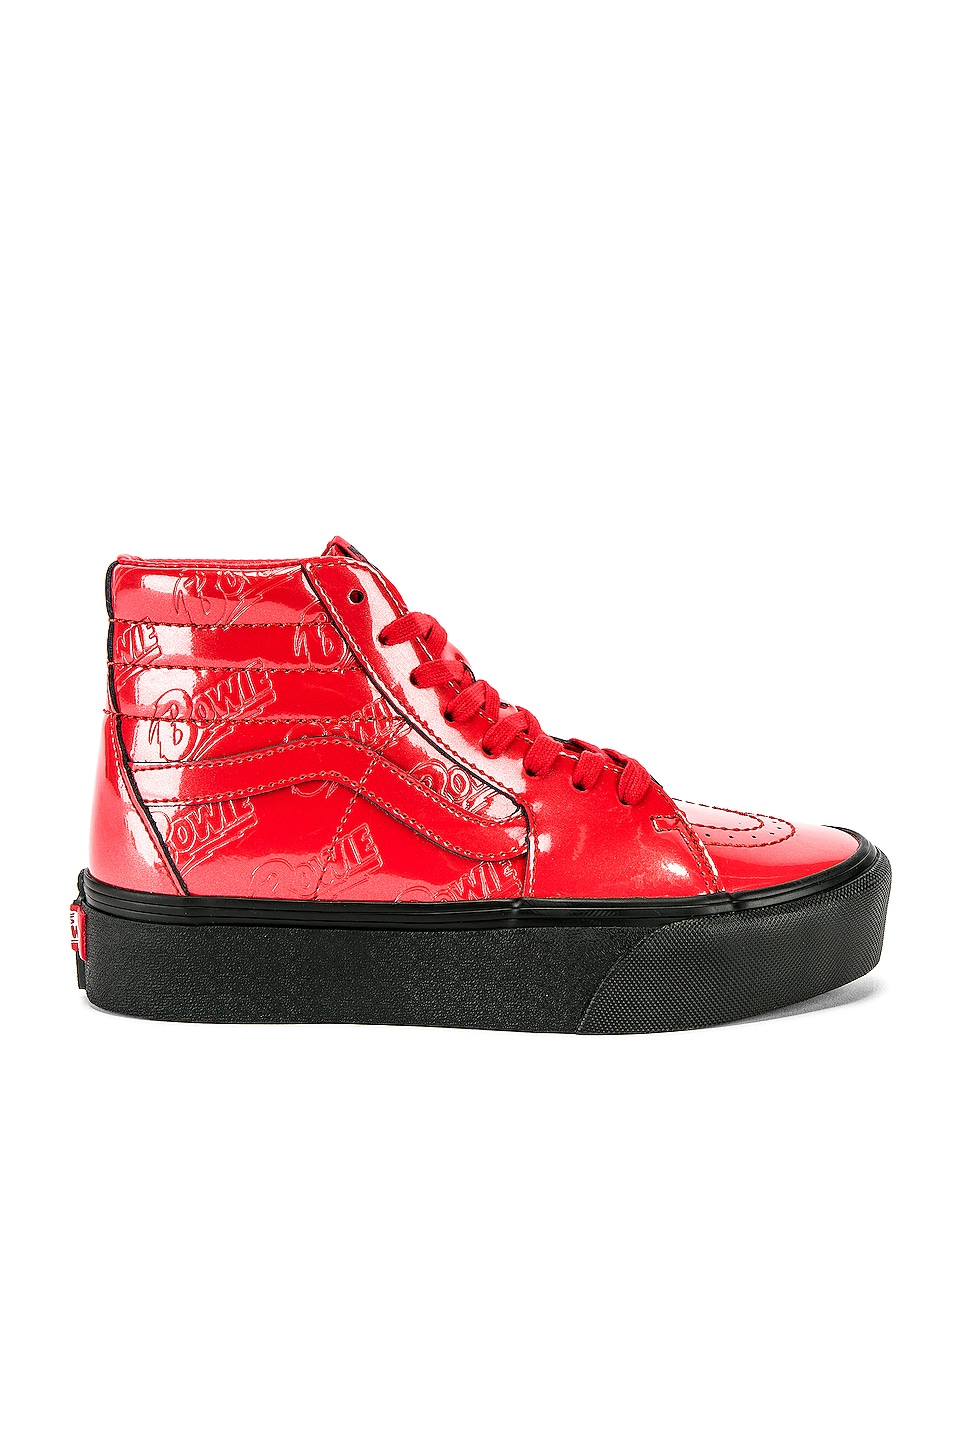 Vans x Bowie Sk8-Hi Platform 2.0 Sneaker in Red & Black